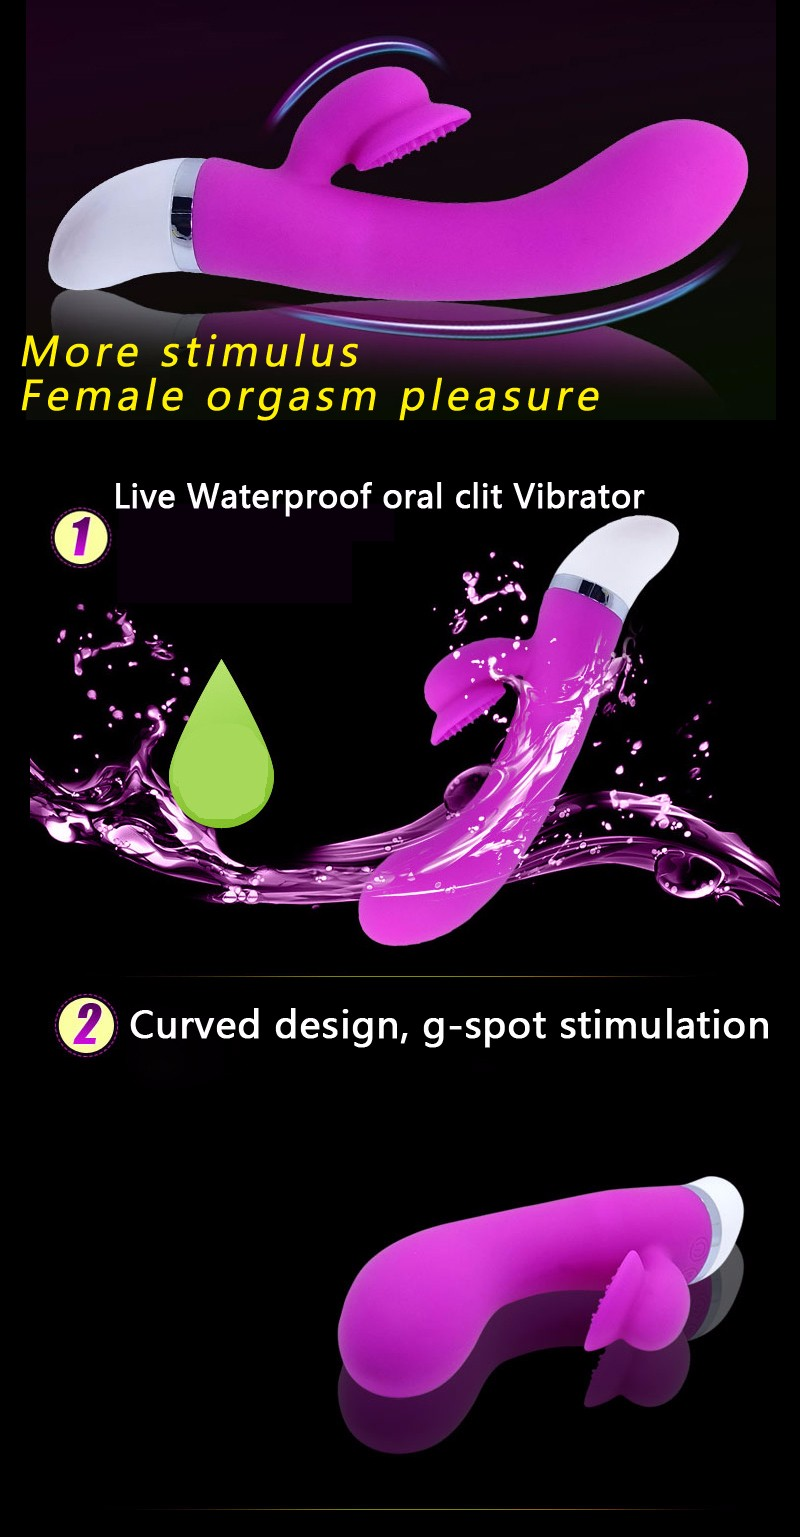 Sex Products Vibrators G Spot Vibrator Waterproof Adult Sex Toys For Woman Stimulator Oral Clit Vibrators for Women Erotic Toys 5